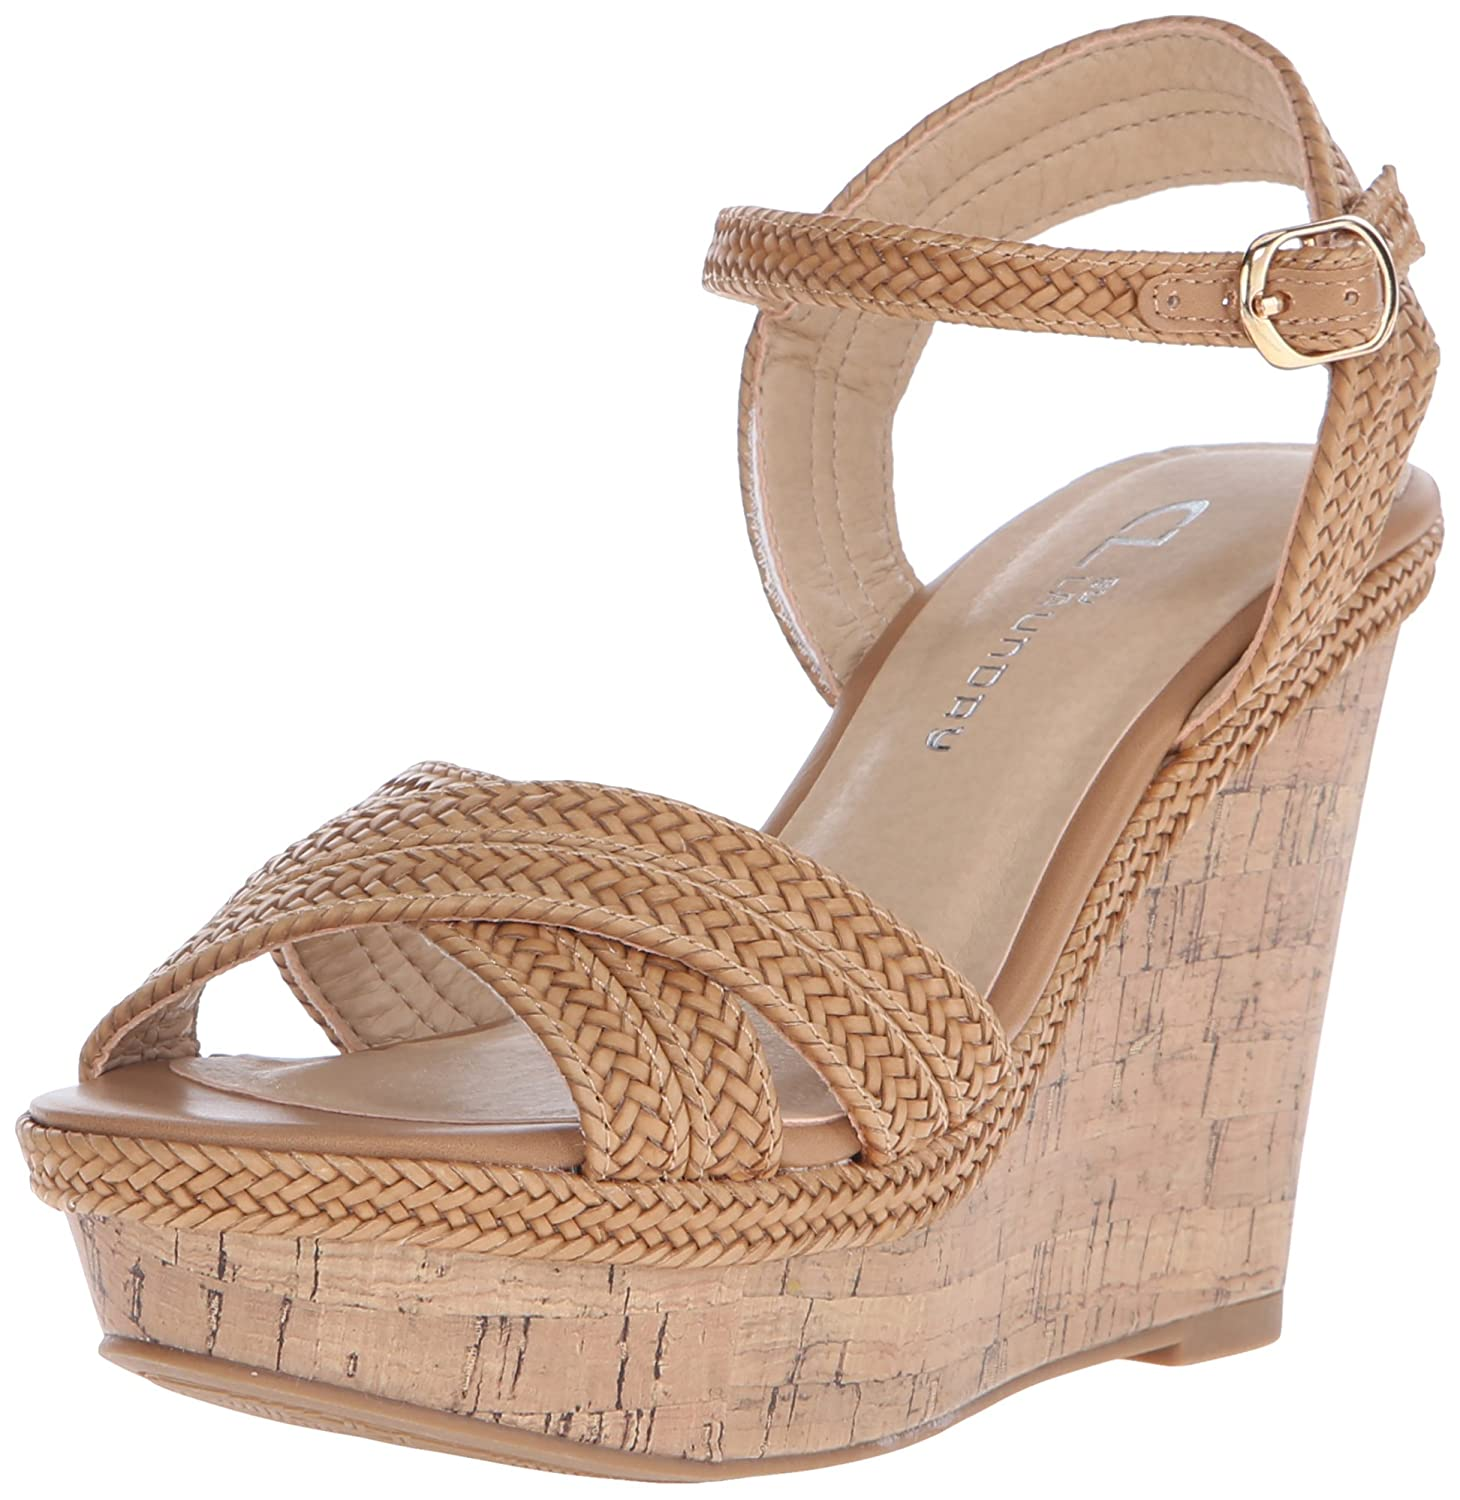 CL by Chinese Laundry Womens Clara Wedge Sandal